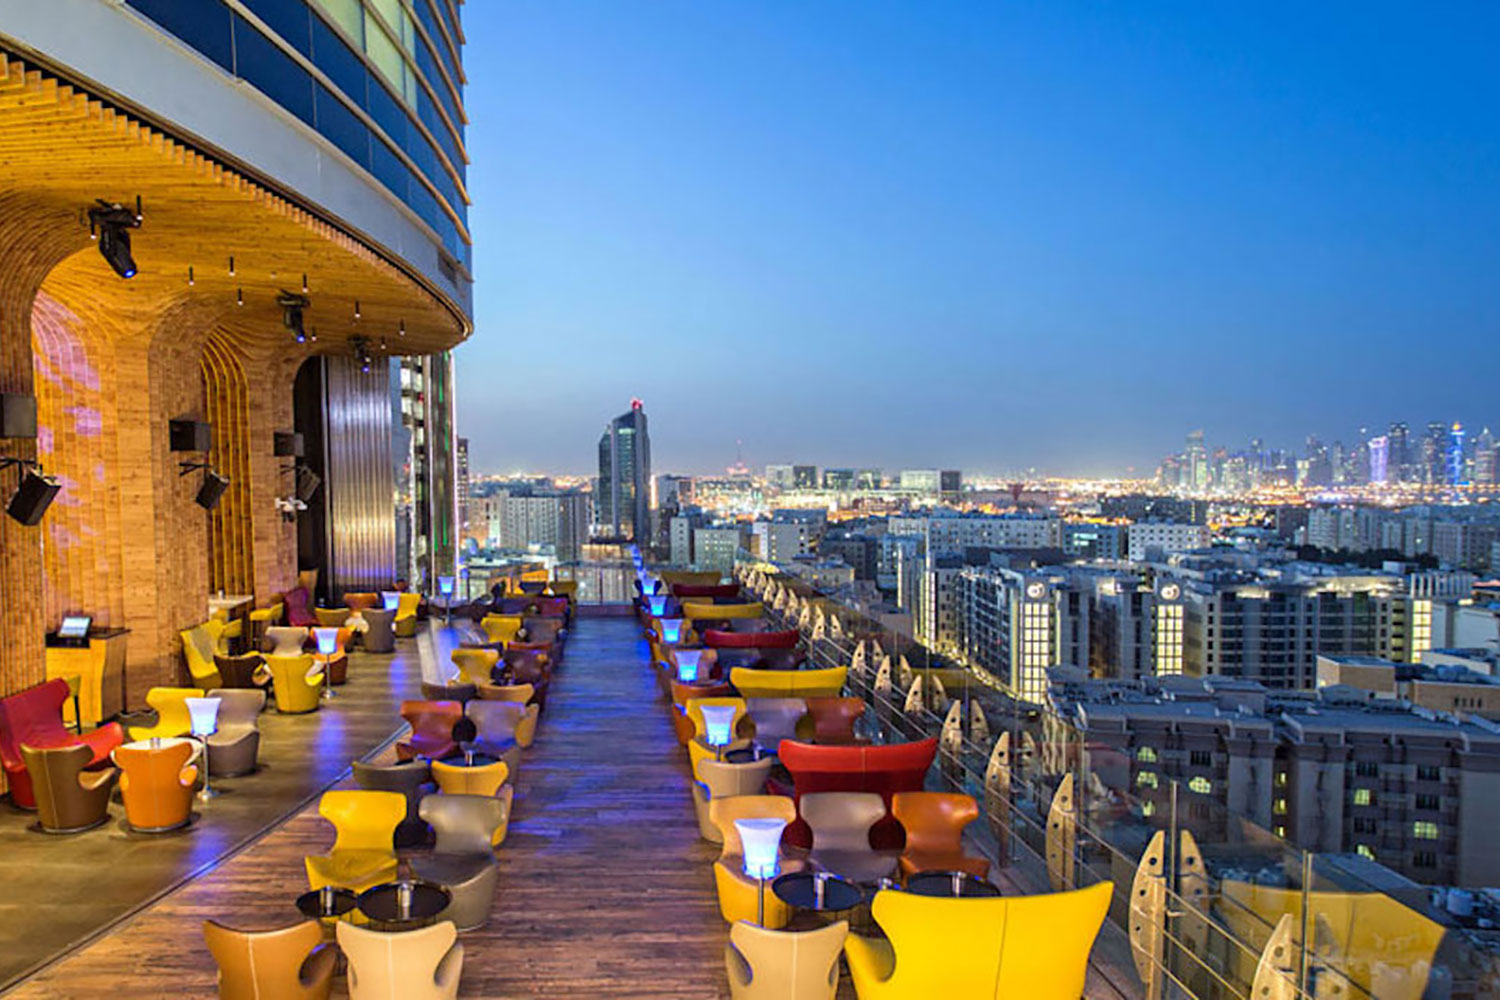 La Cigale, Doha's newest luxury hotel. WSDG performed a full acoustic makeover. Rooftop Bar 5